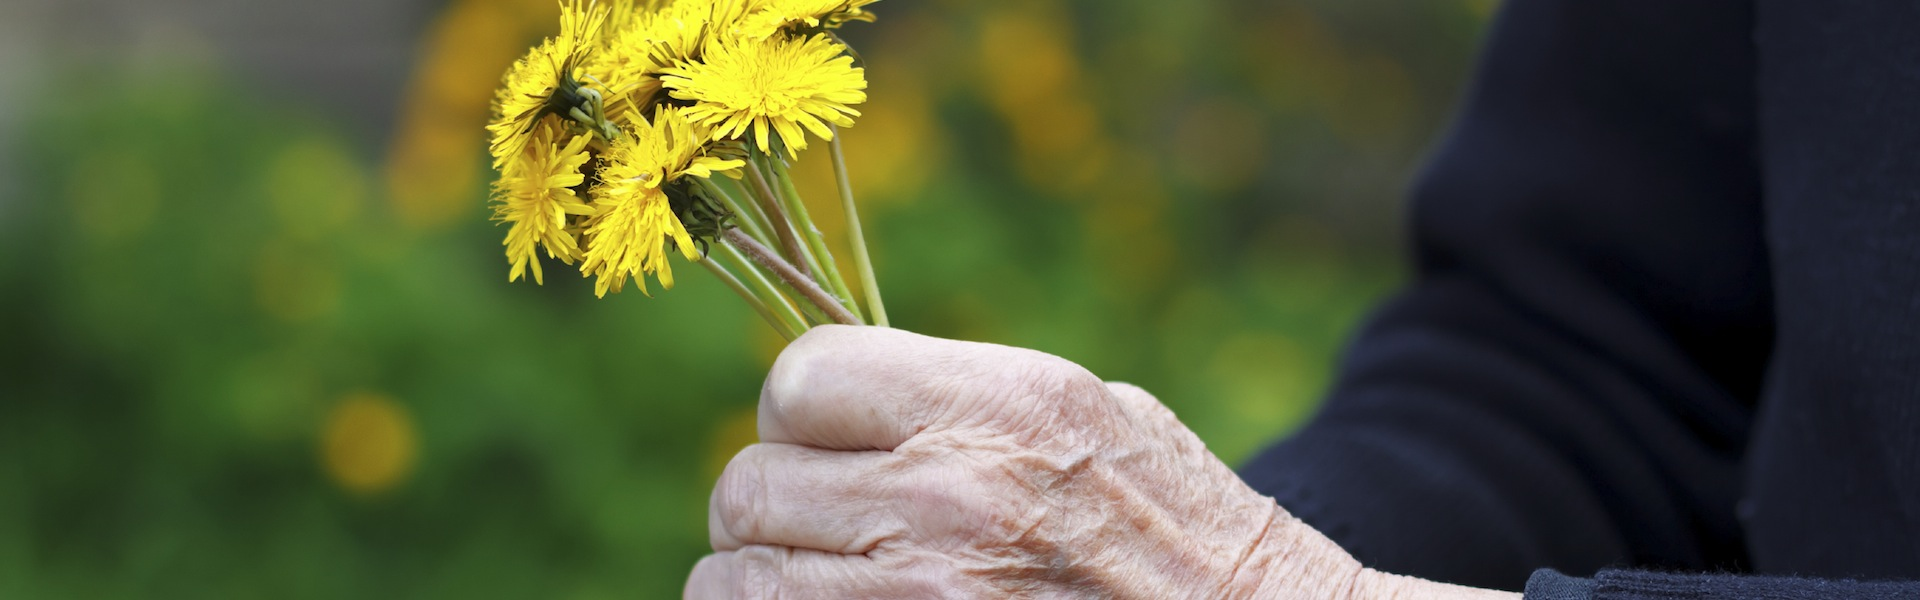 Close up of wrinkled hands holding a yellow flower